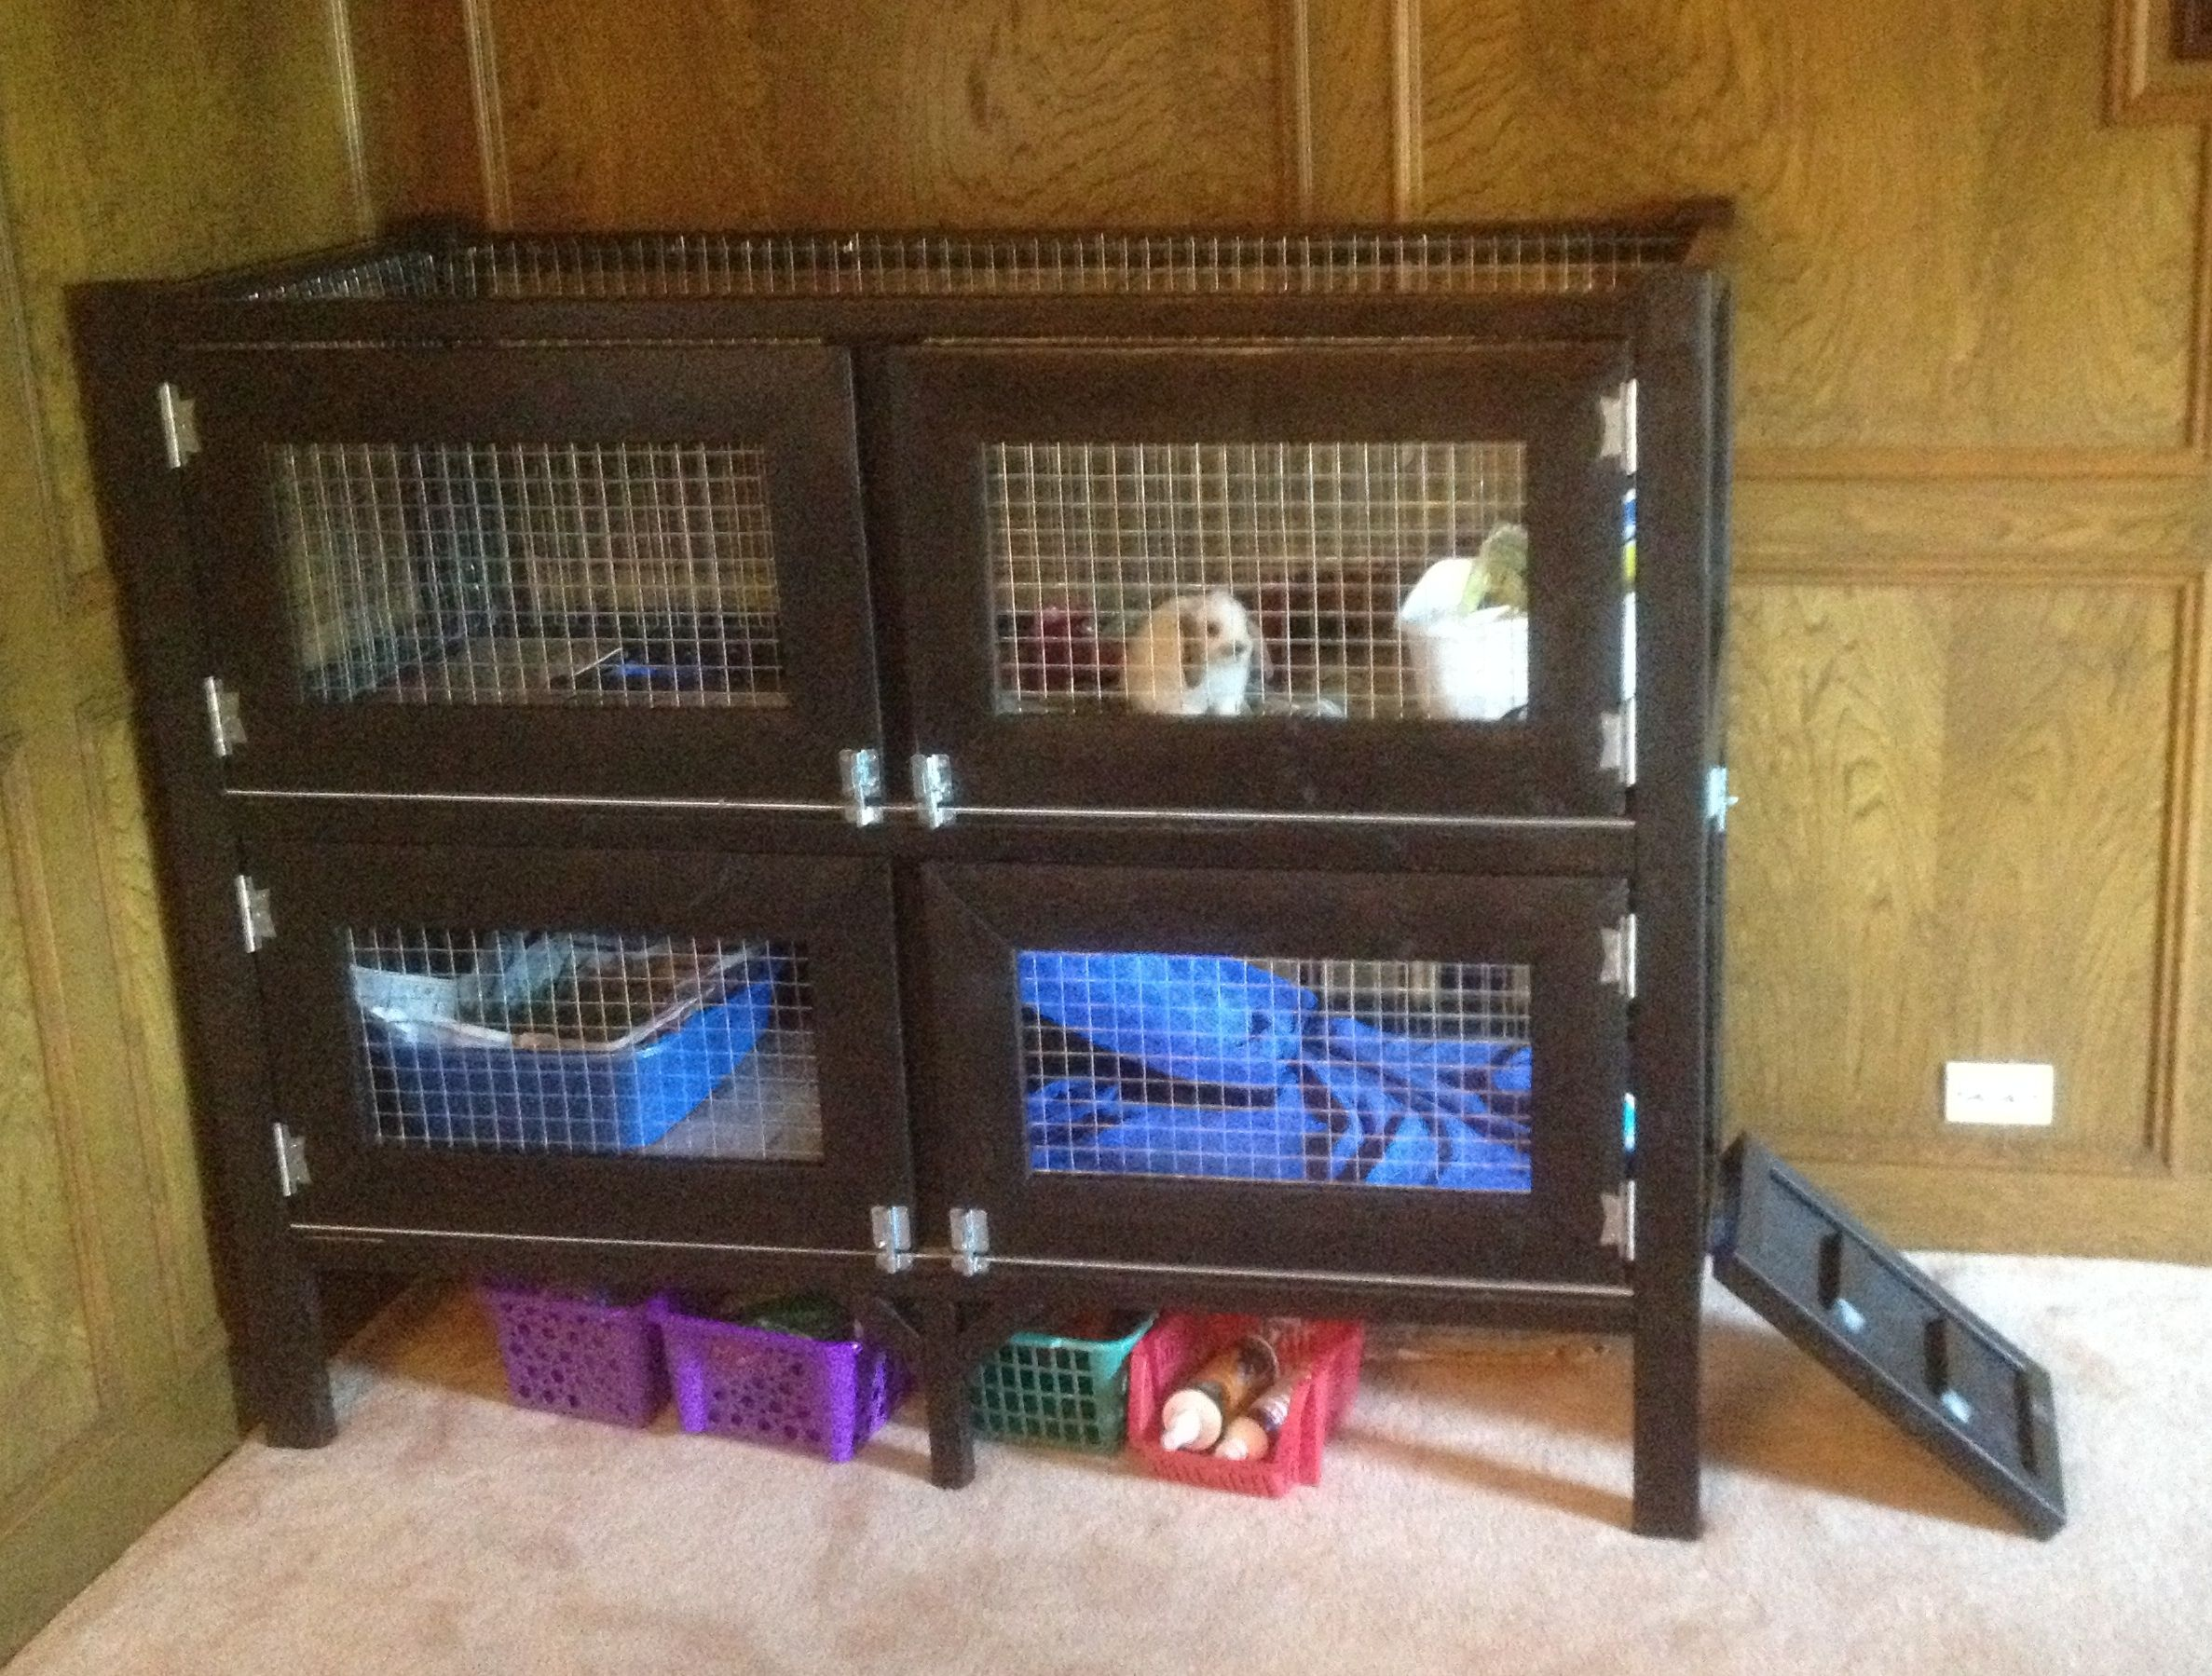 Do it yourself hedgehog cage two story rabbit hutch for Design indoor rabbit cages